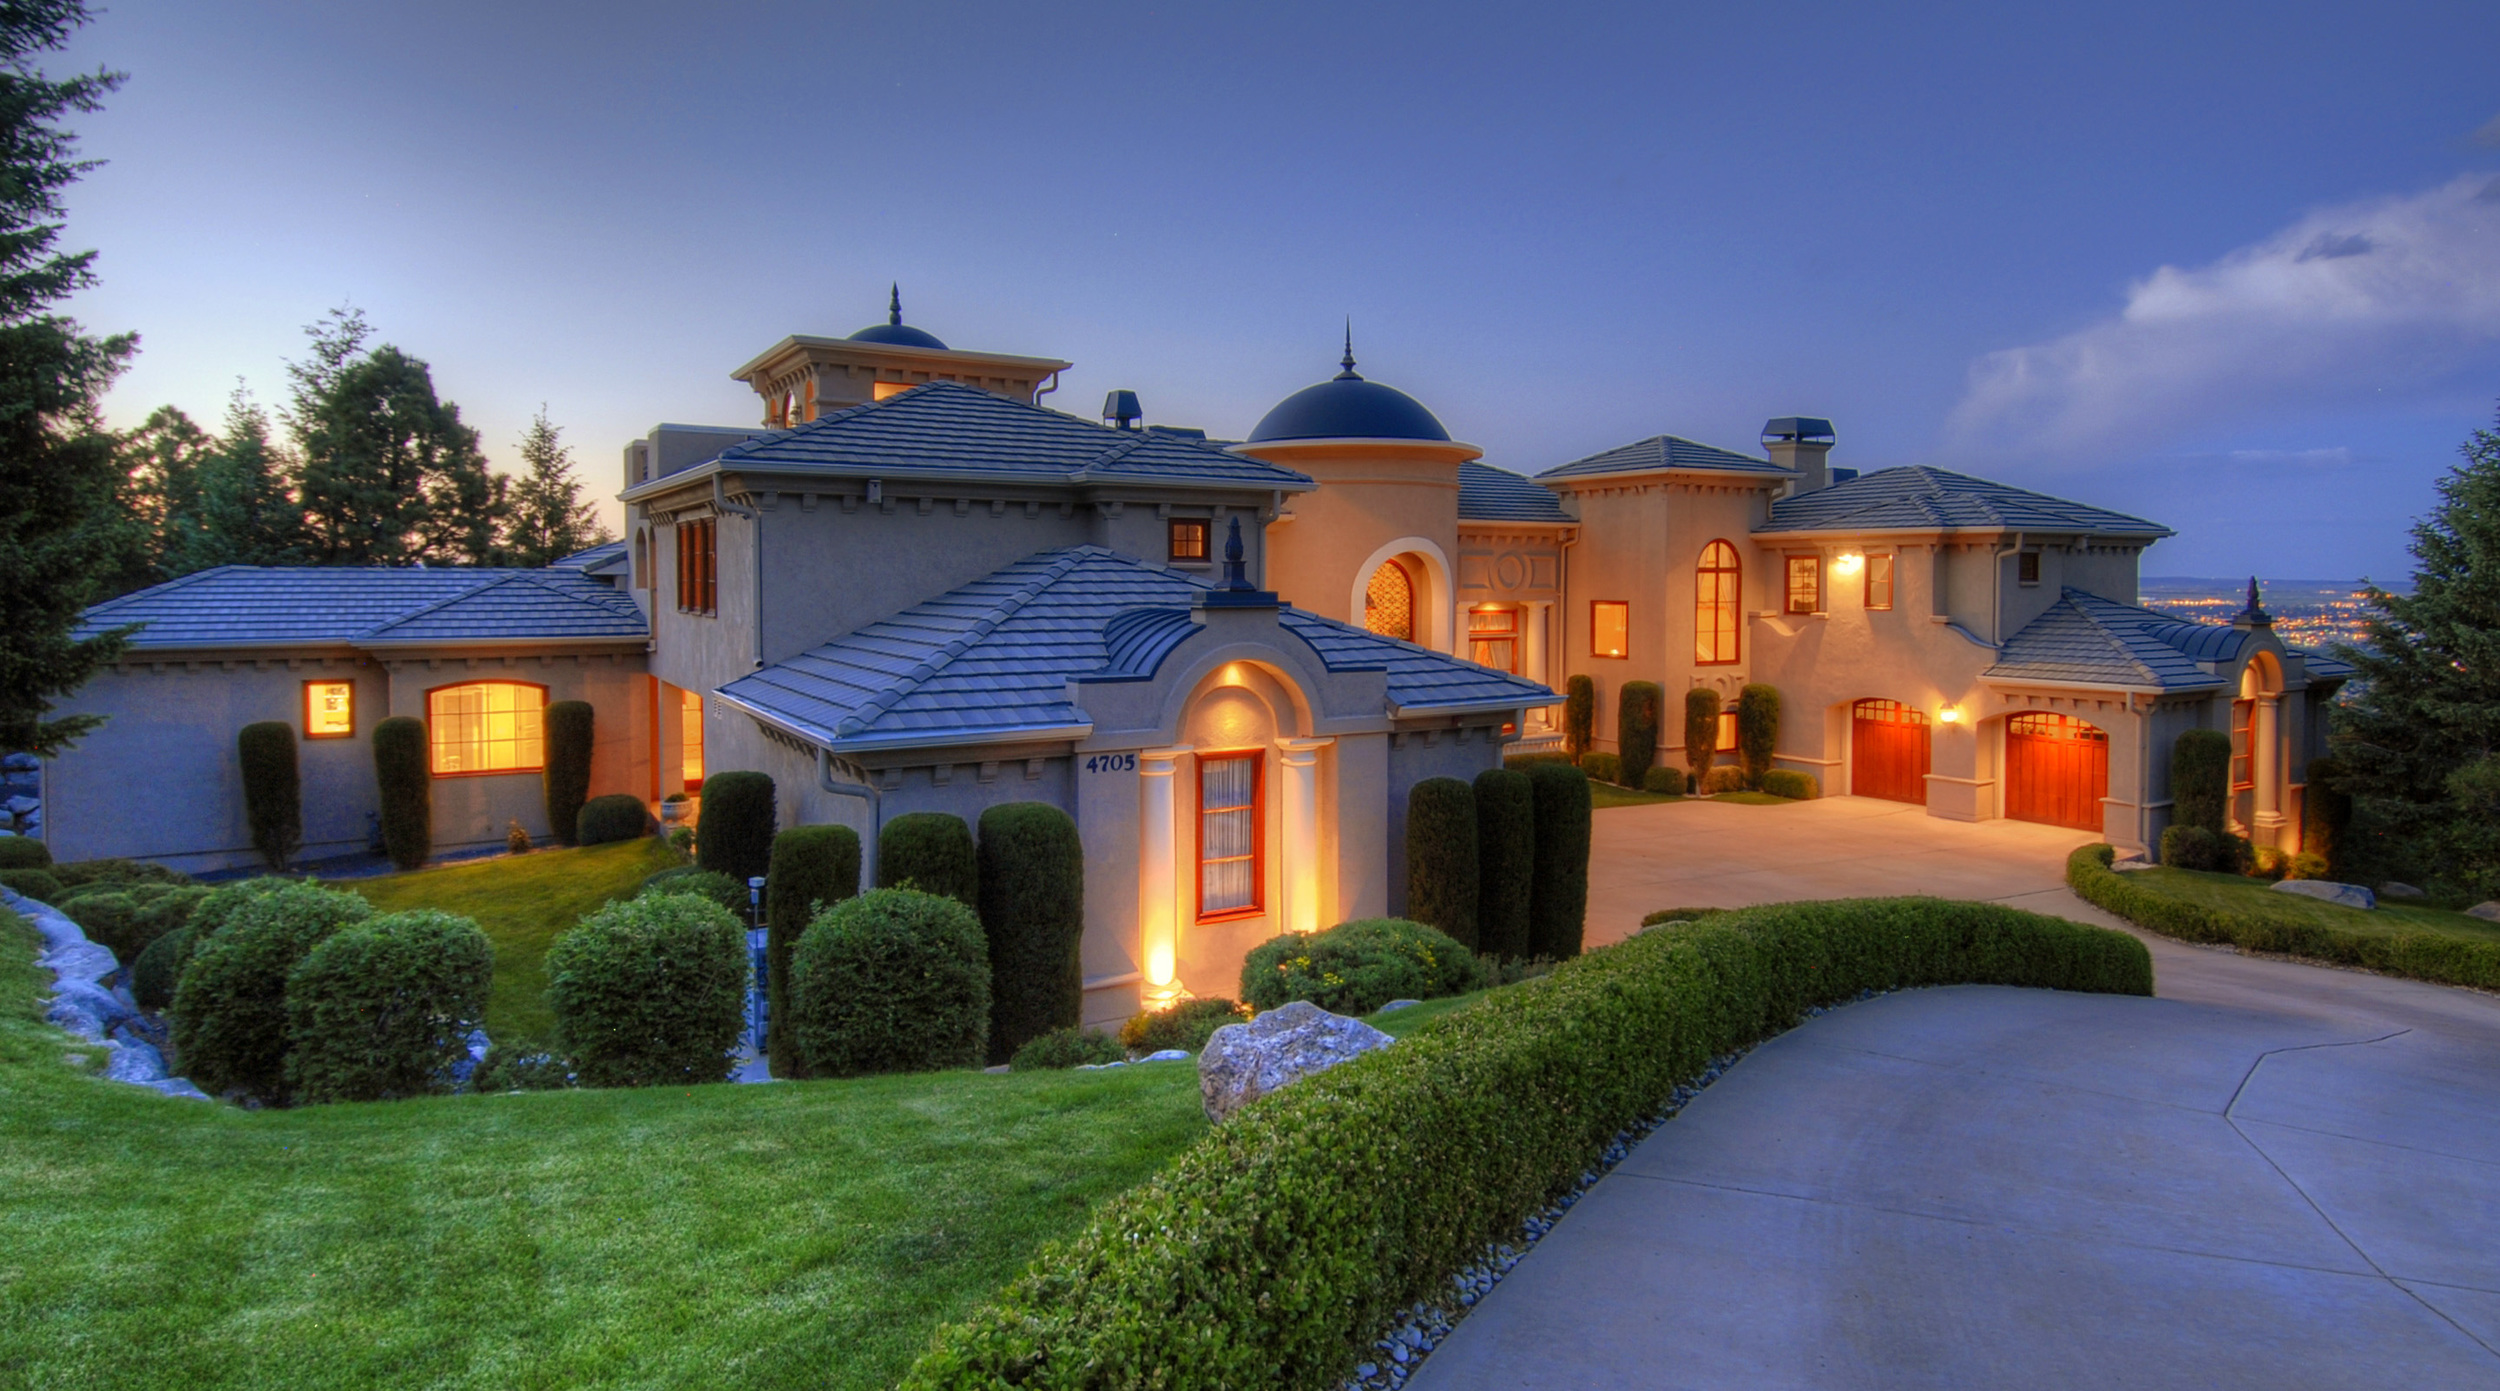 16- Front of Home in the Evening.jpg